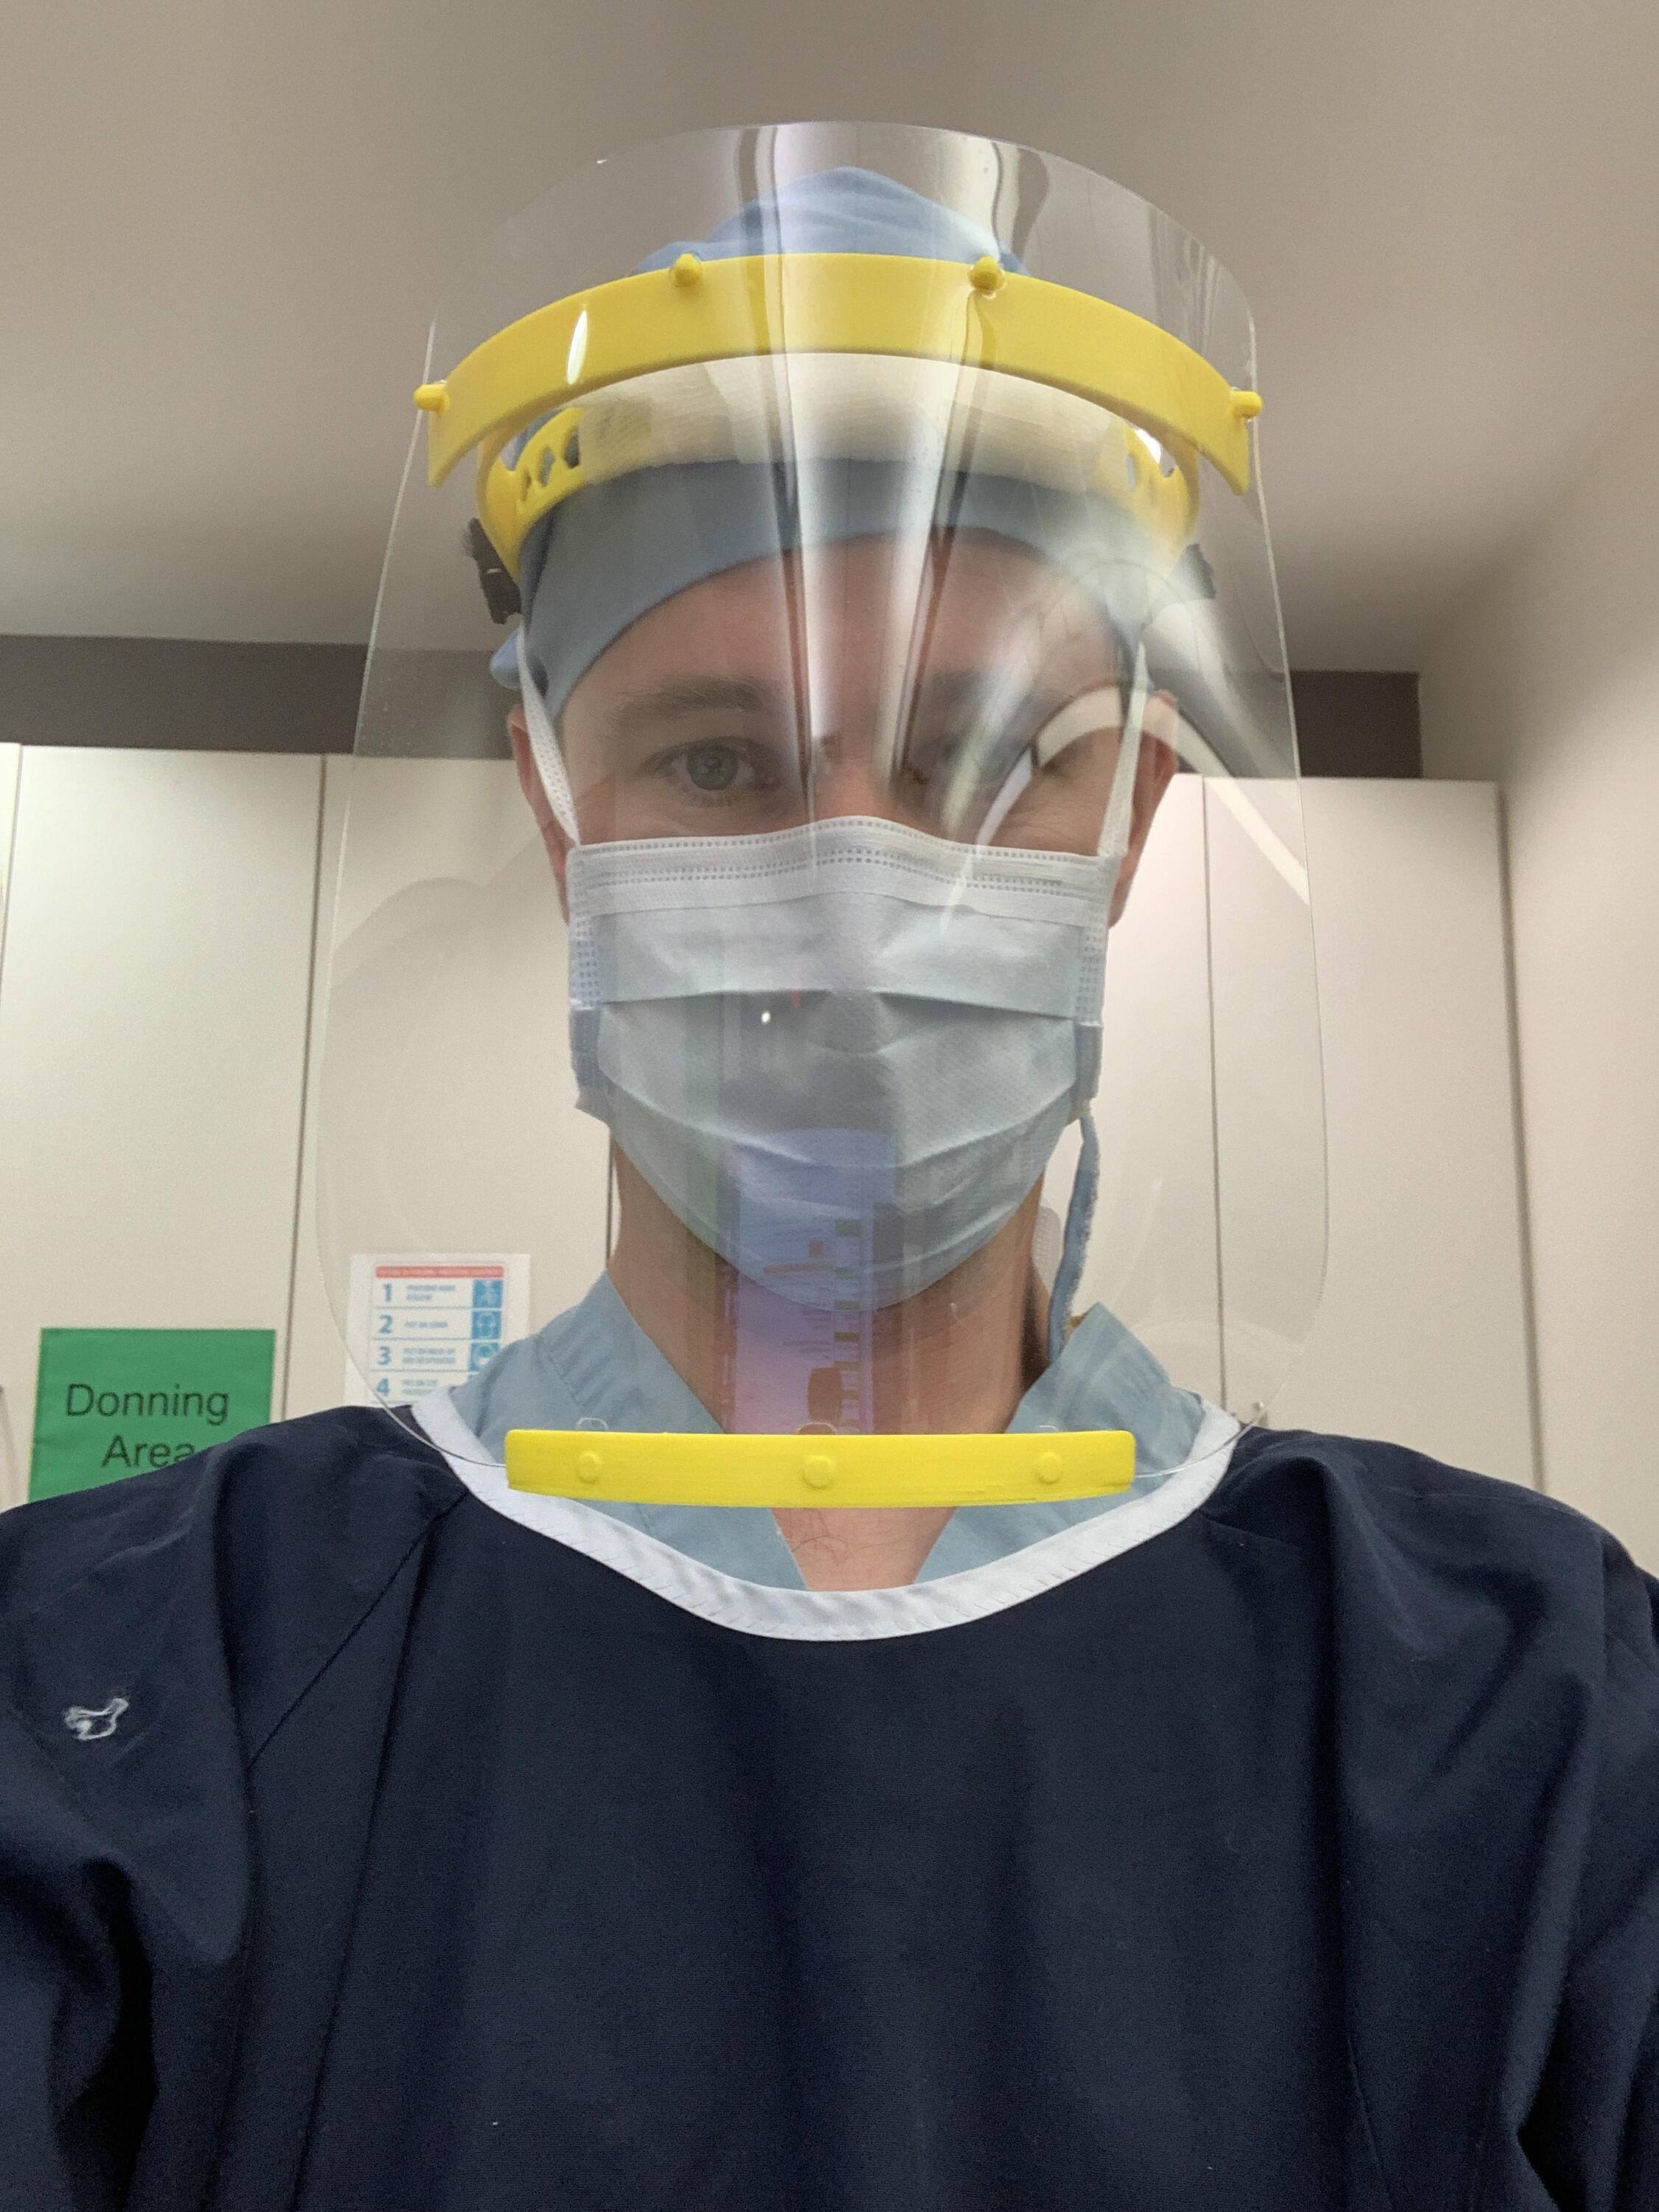 Art Winter takes a photo of himself wearing a full face shielf and mask in his hospital setting.